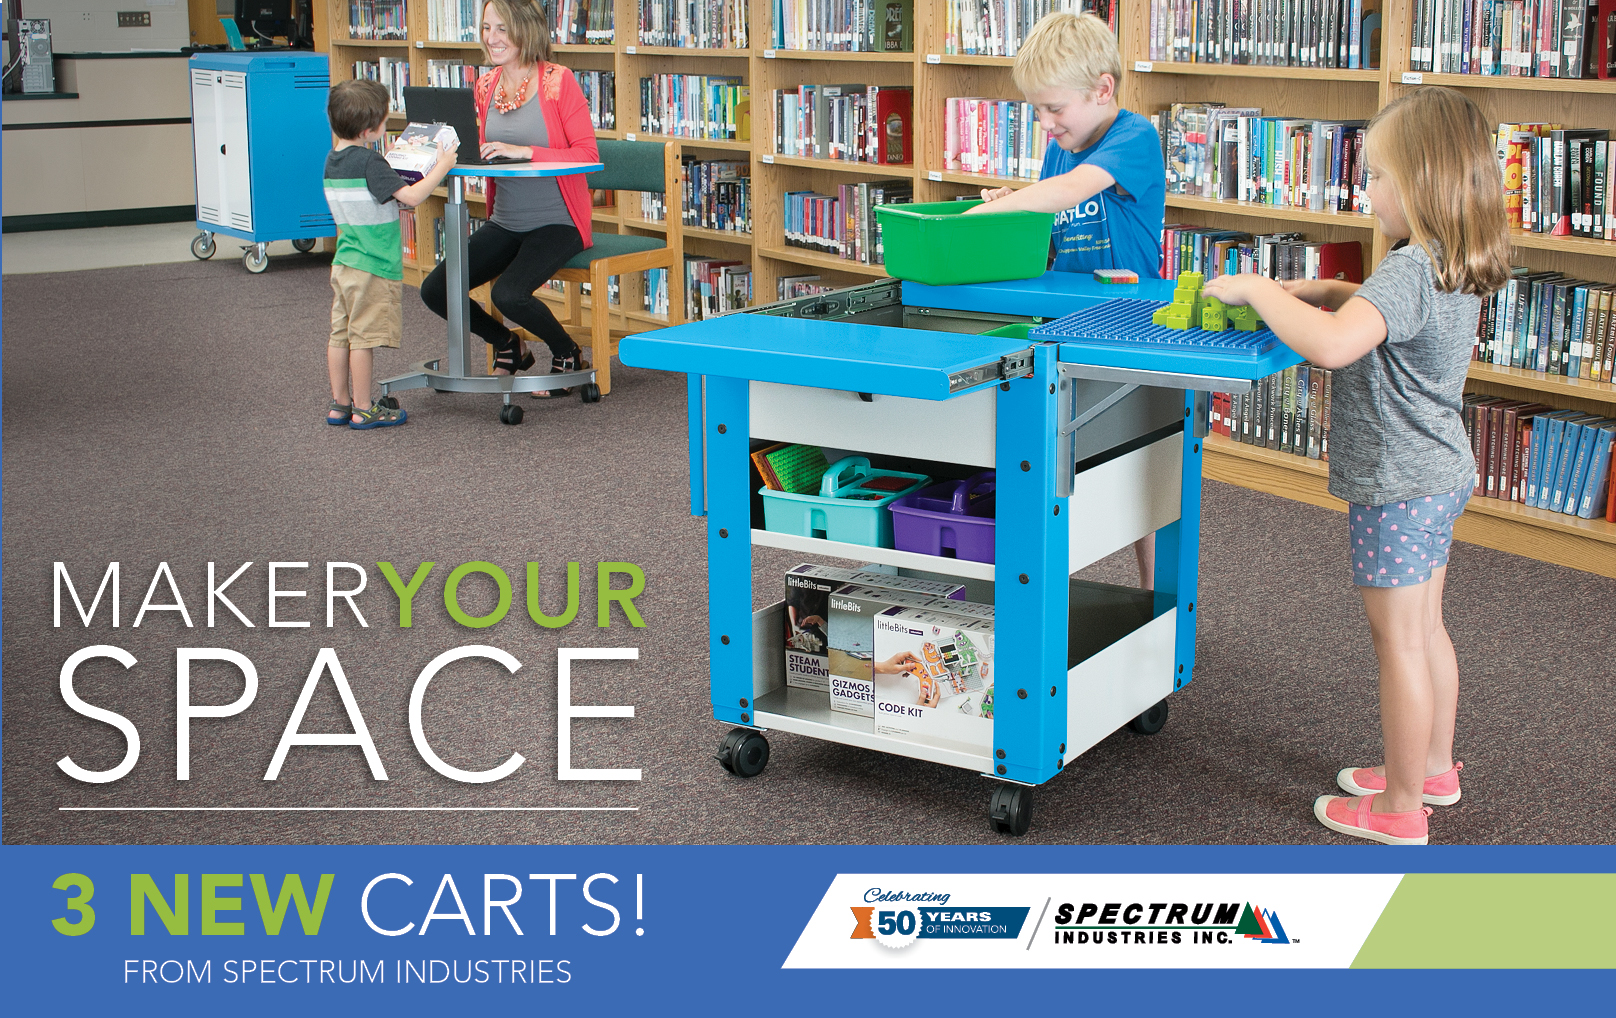 3 New Maker Space Carts from Spectrum!